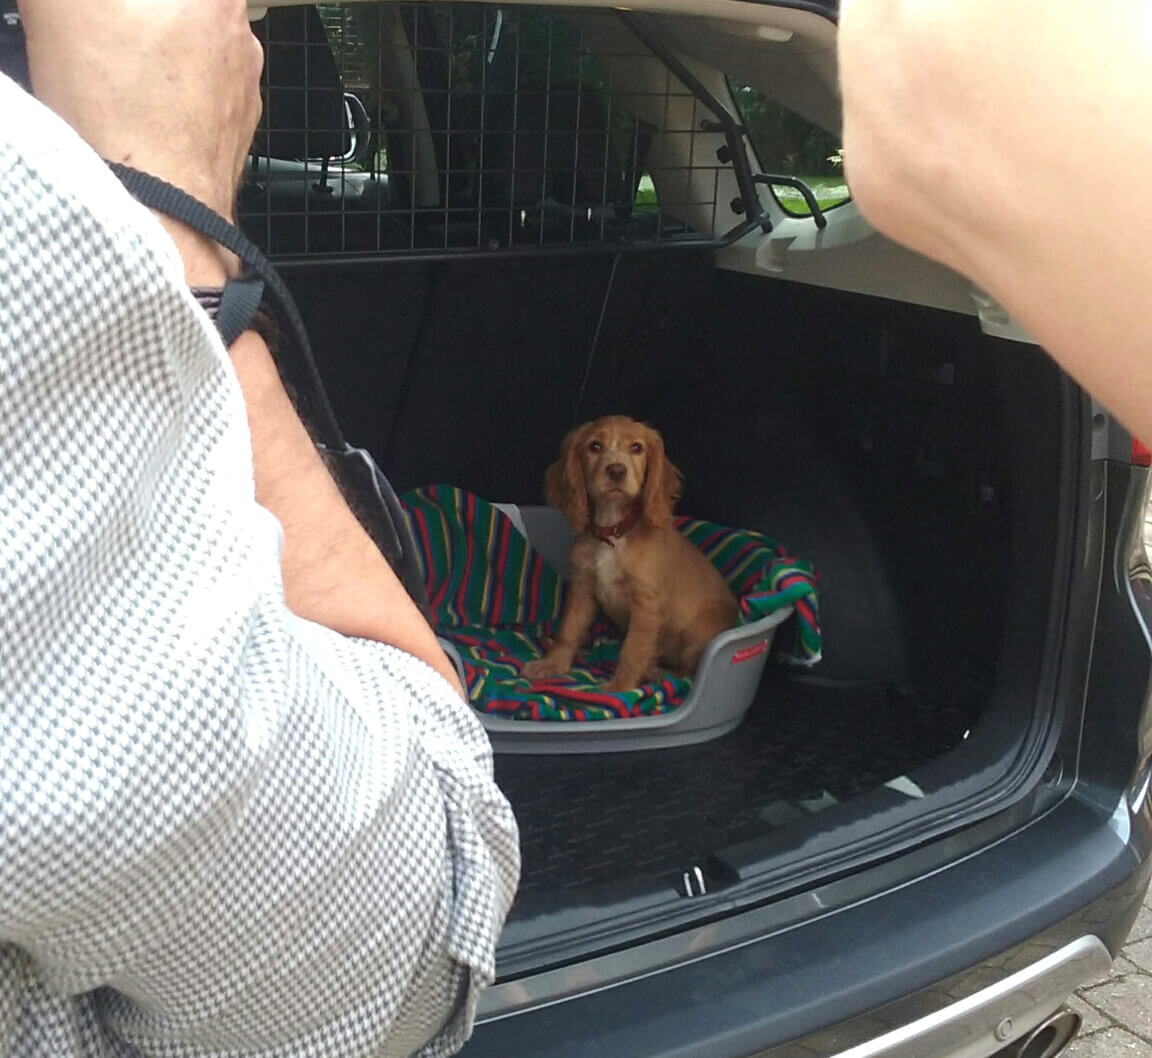 Photographer taking picture of puppy in trunk of SUV